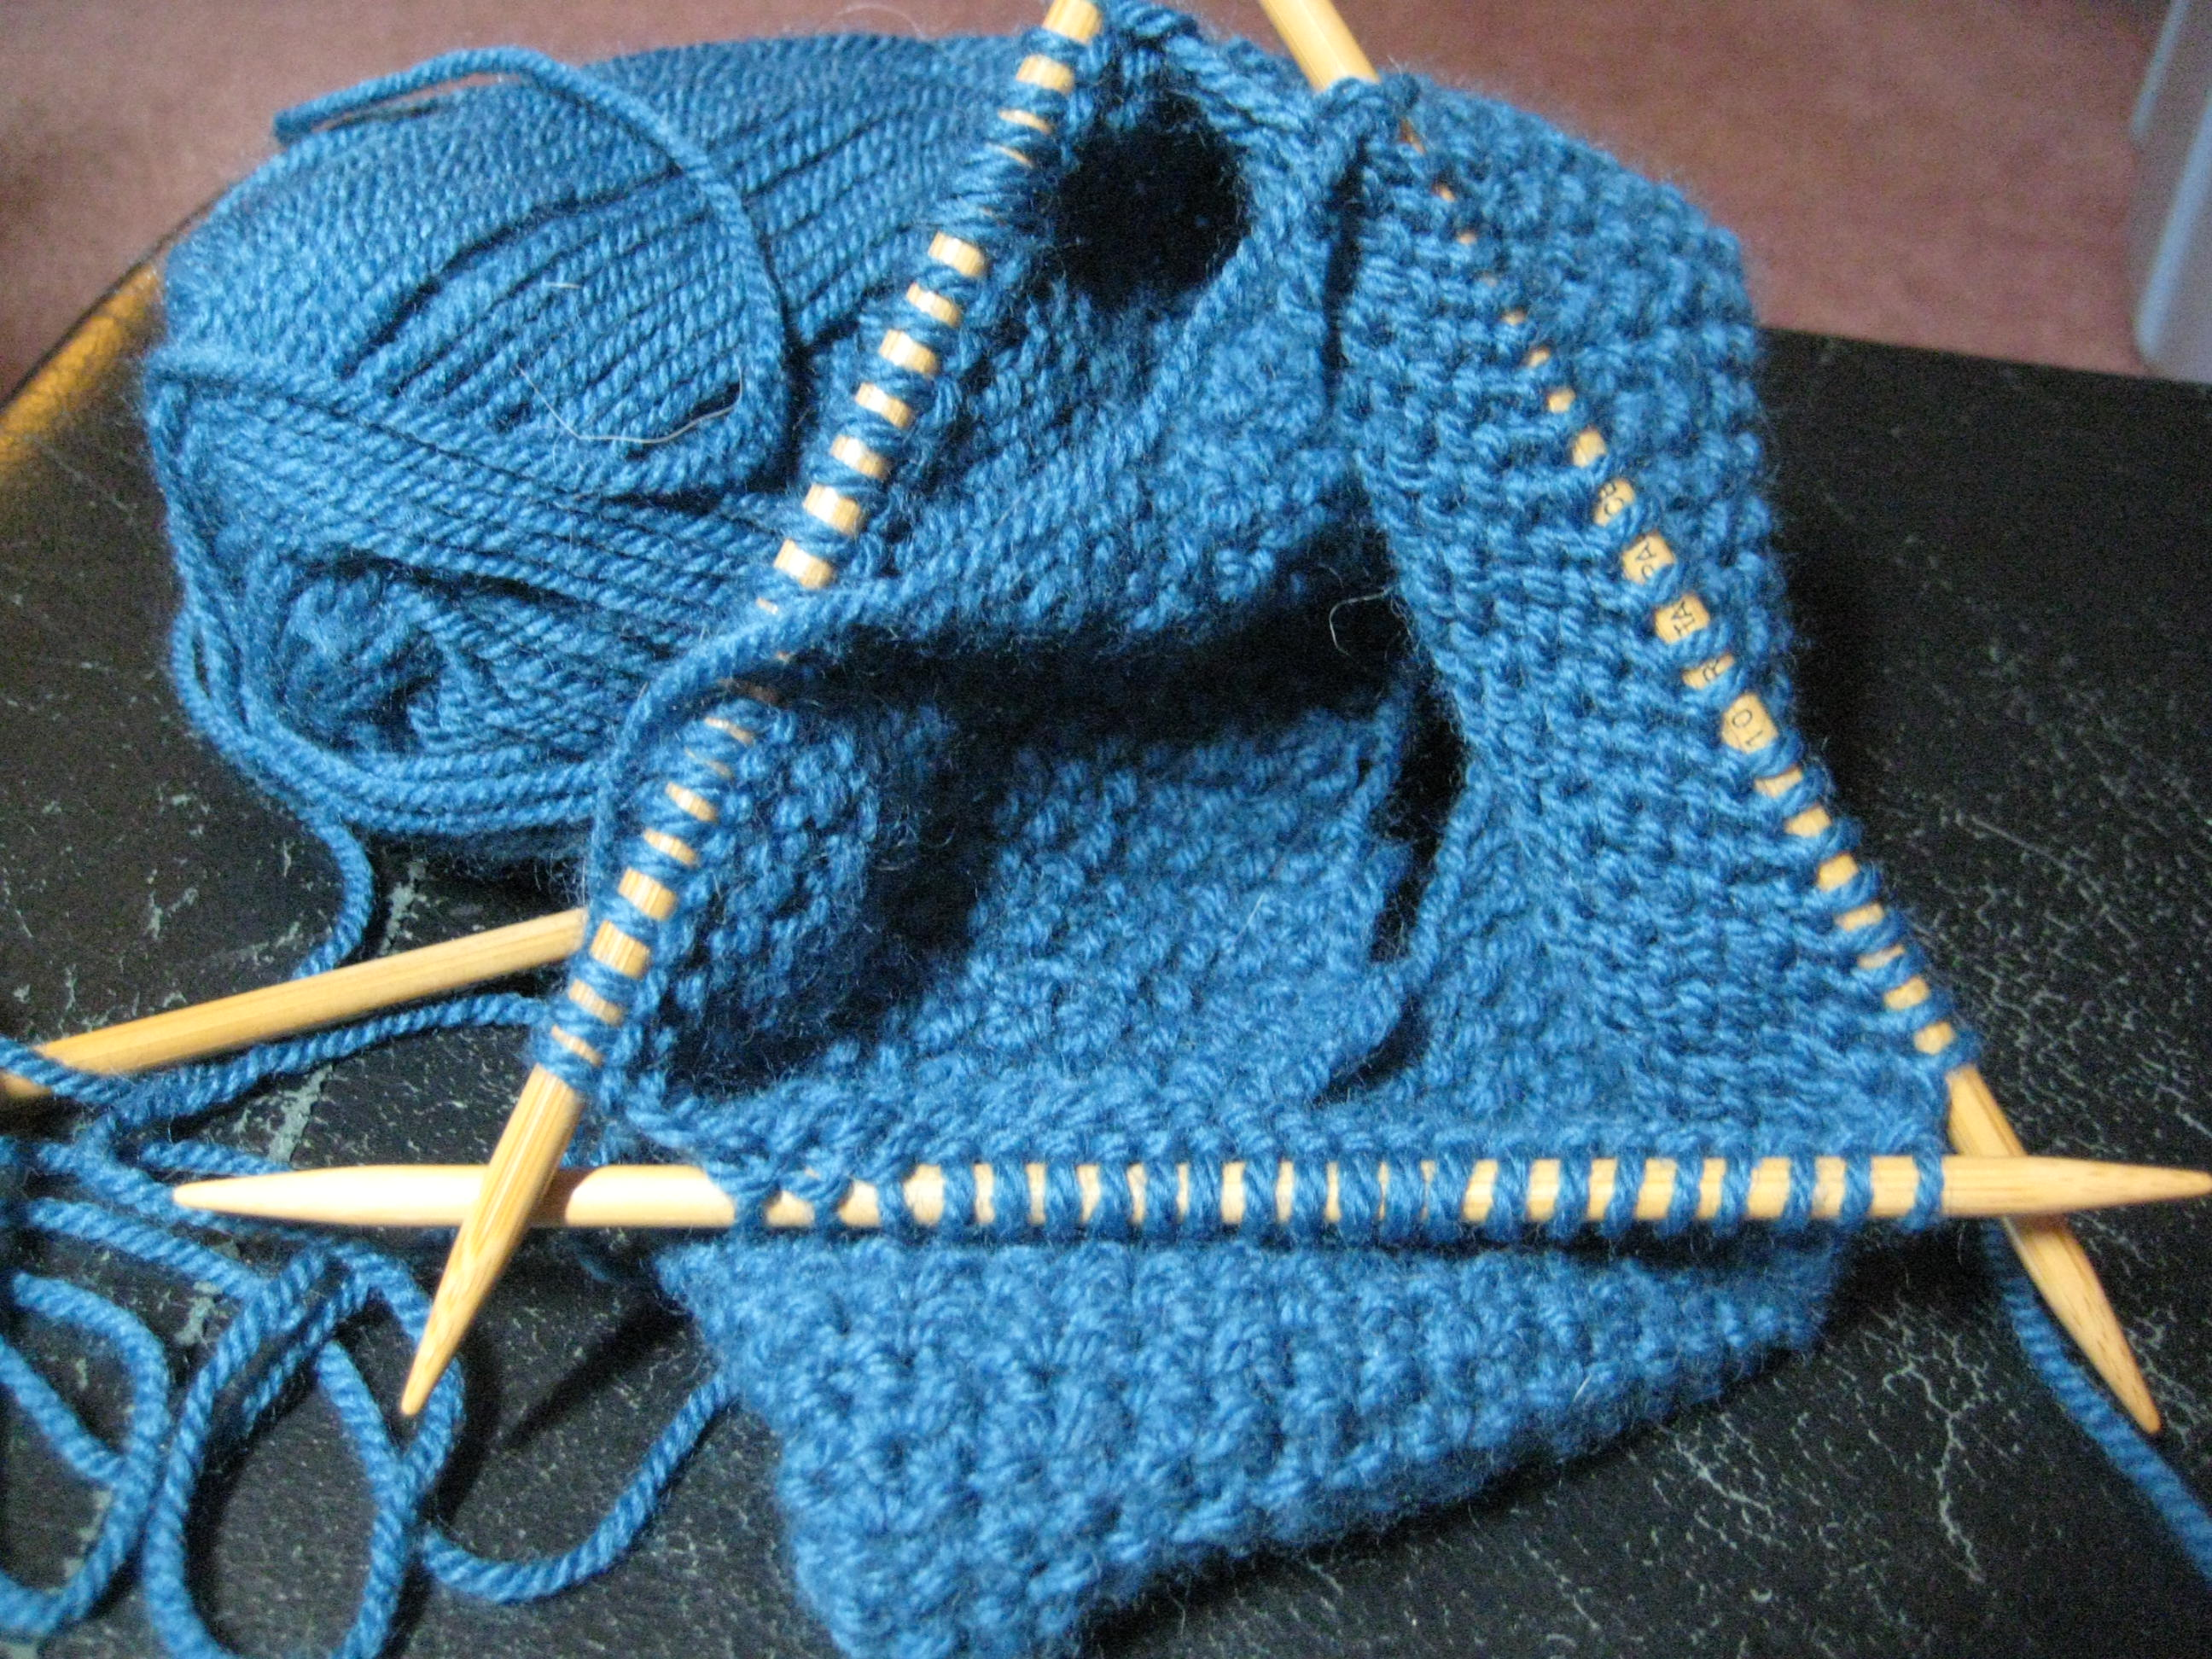 Knitting In The Round Without Double Pointed Needles : File double pointed kitting needles in use g wikimedia